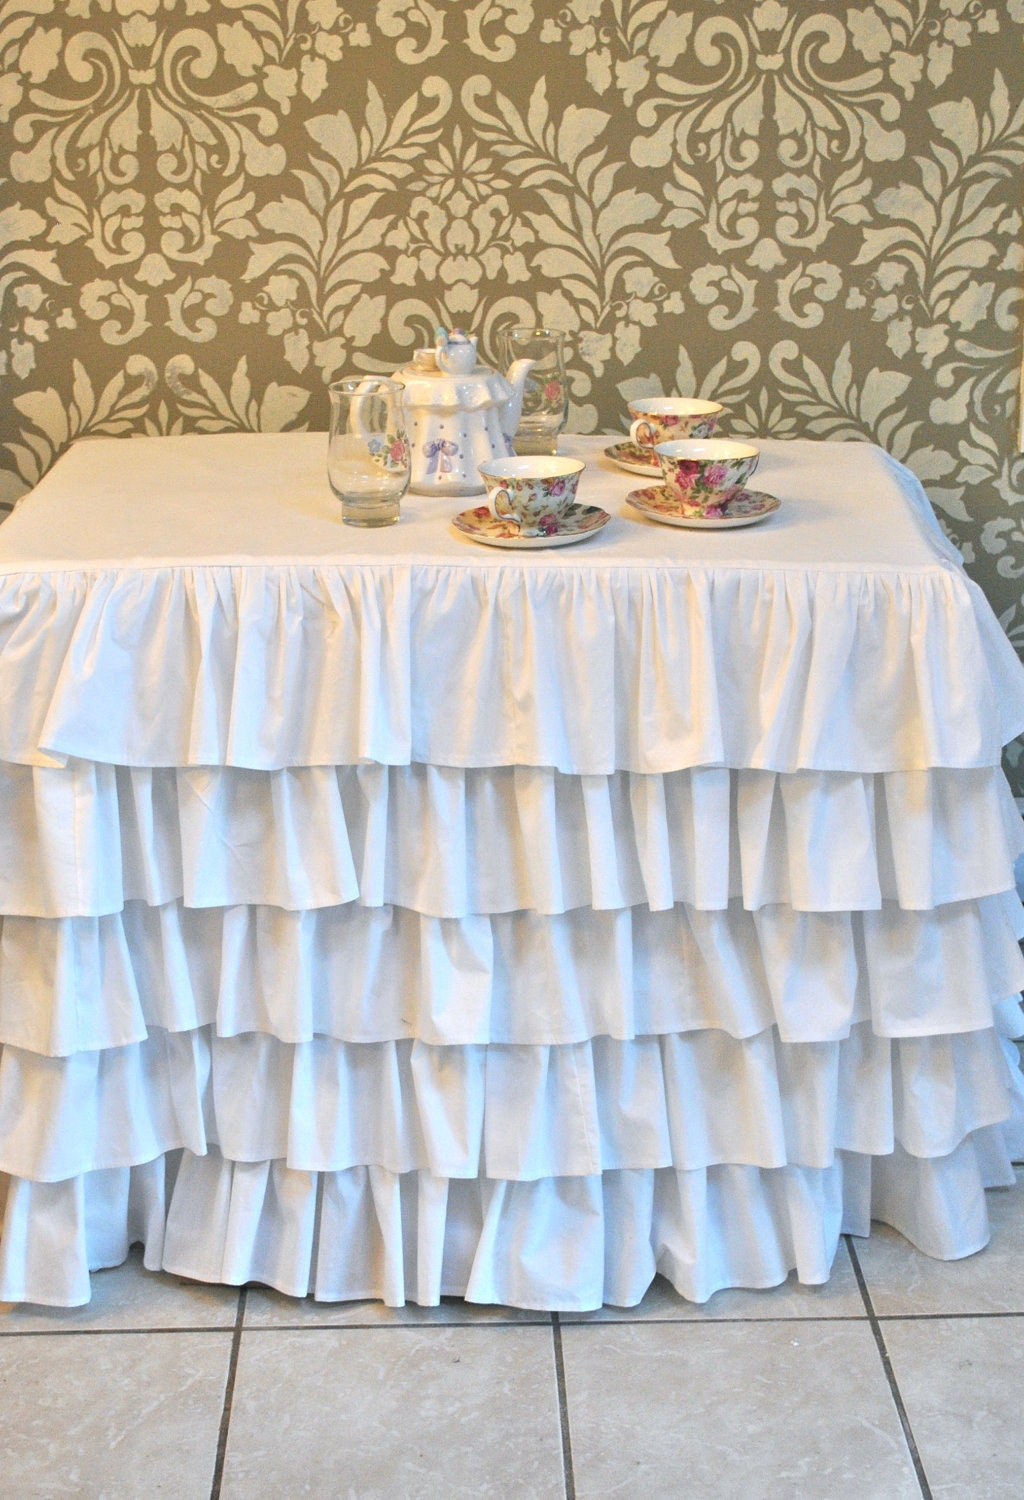 White Ruffle Tablecloth Ruffled Tablecloth